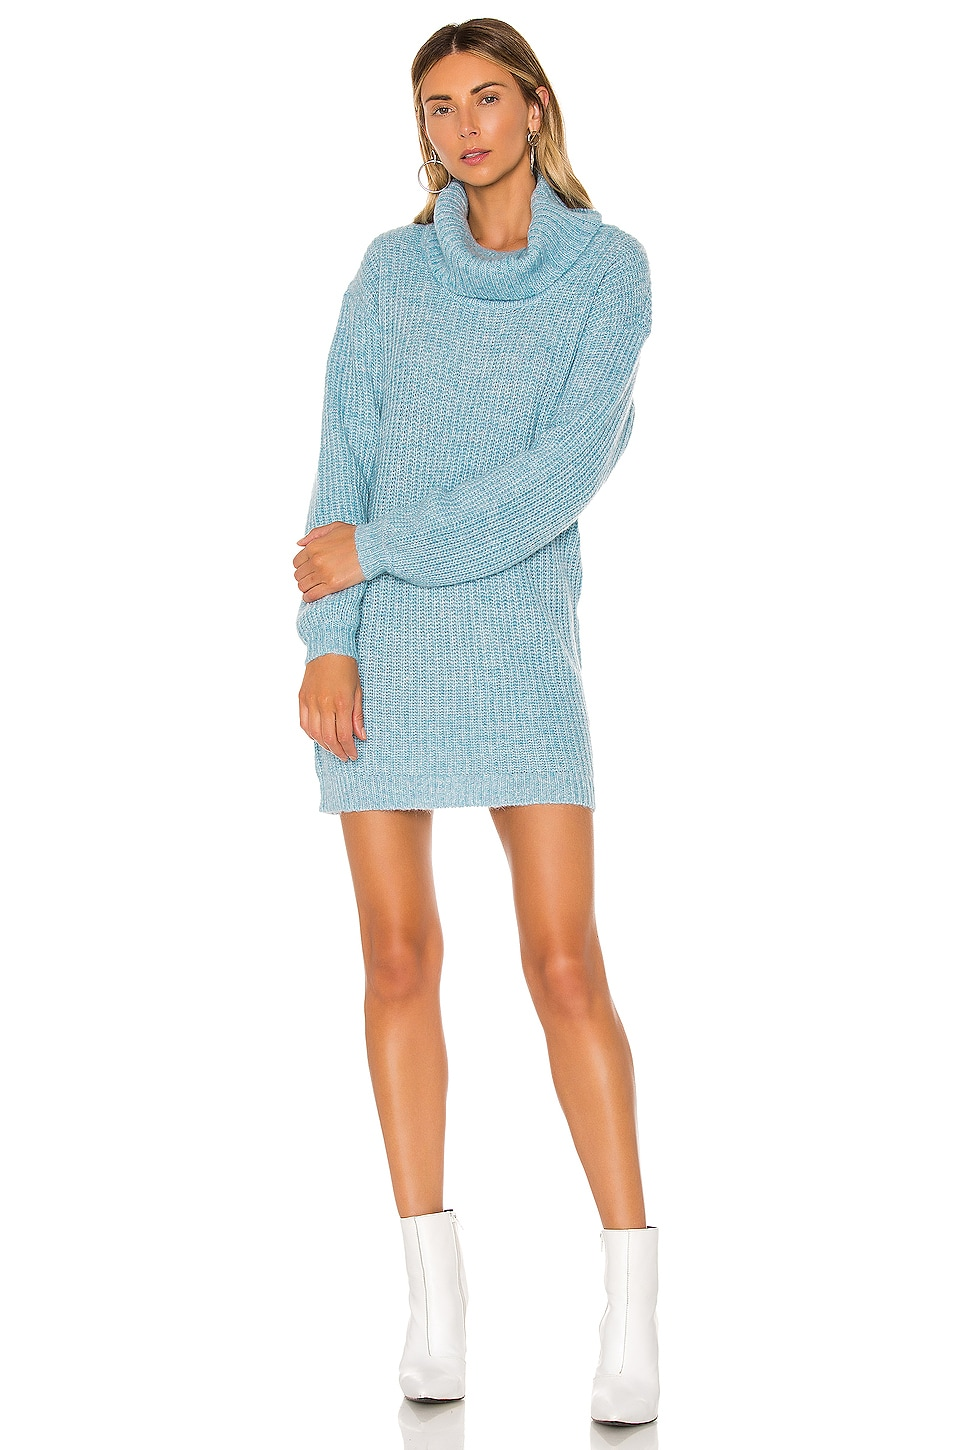 Tularosa Haven Sweater in Sky